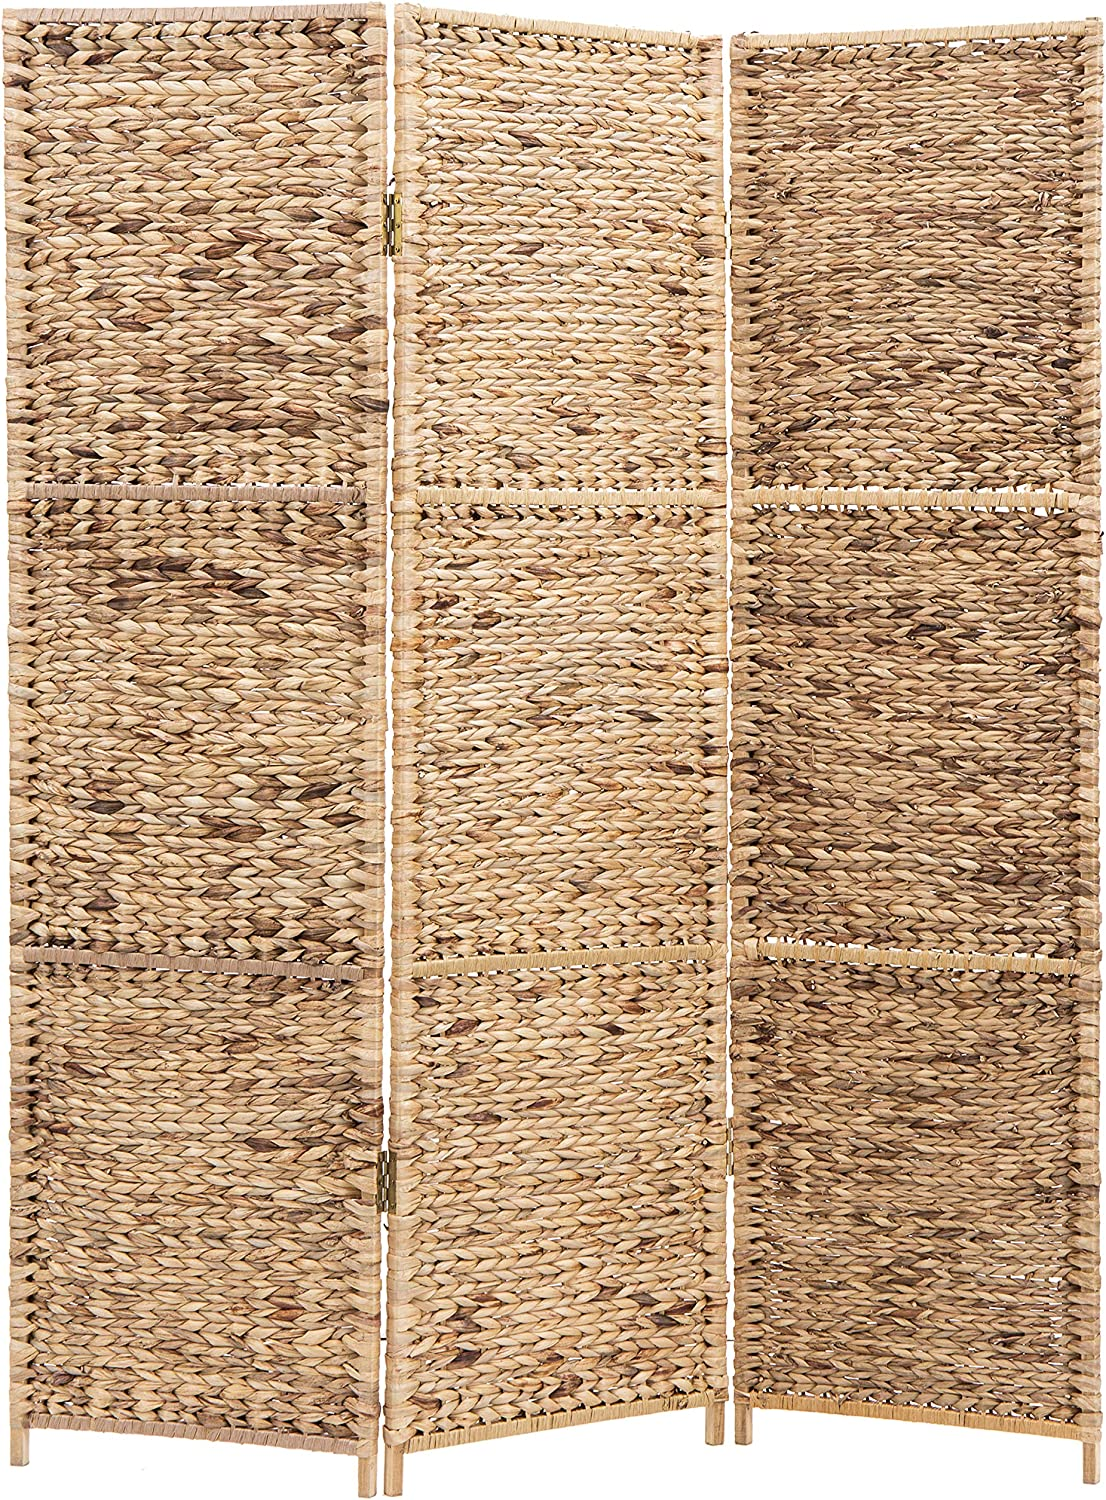 MyGift 3-Panel Handwoven Seagrass Wood Framed Room Divider/Privacy Folding Screen, Brown